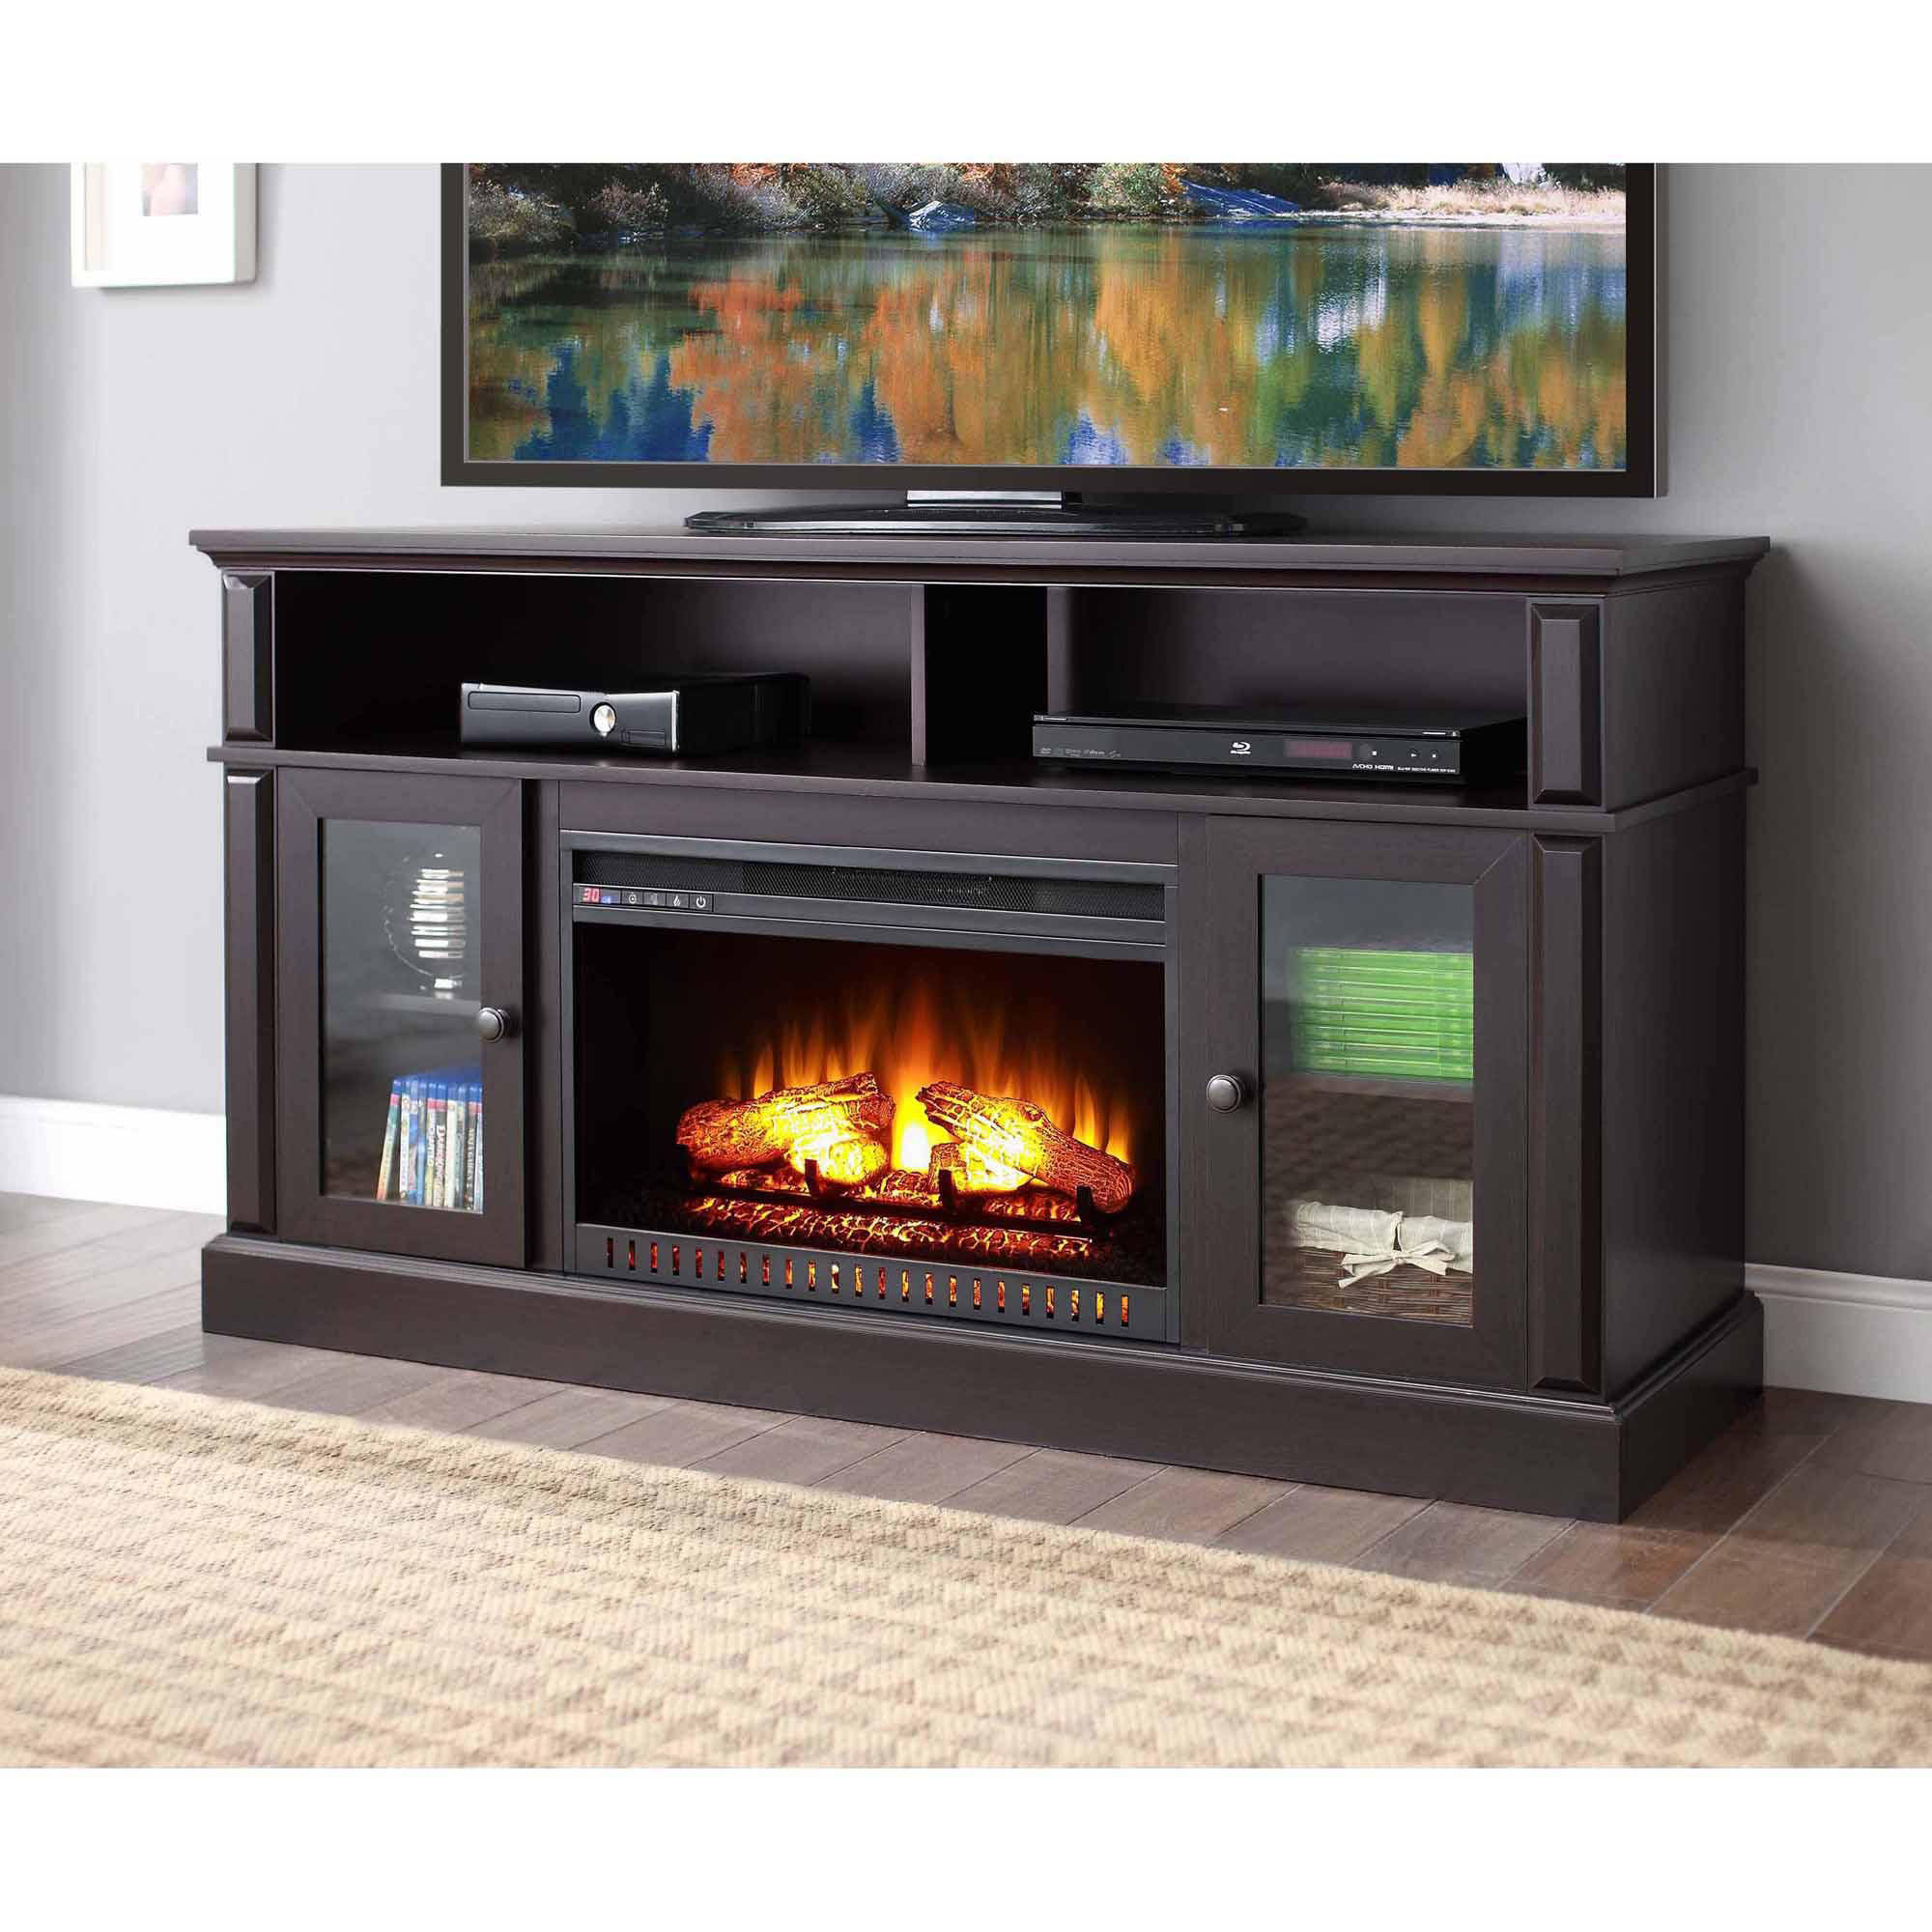 ideas and tv fireplaces a cabinets to built mount baby in flat with tvs over astounding lovable place pictures cabinet nursery mantels fire images fireplace about lovely stand mirror